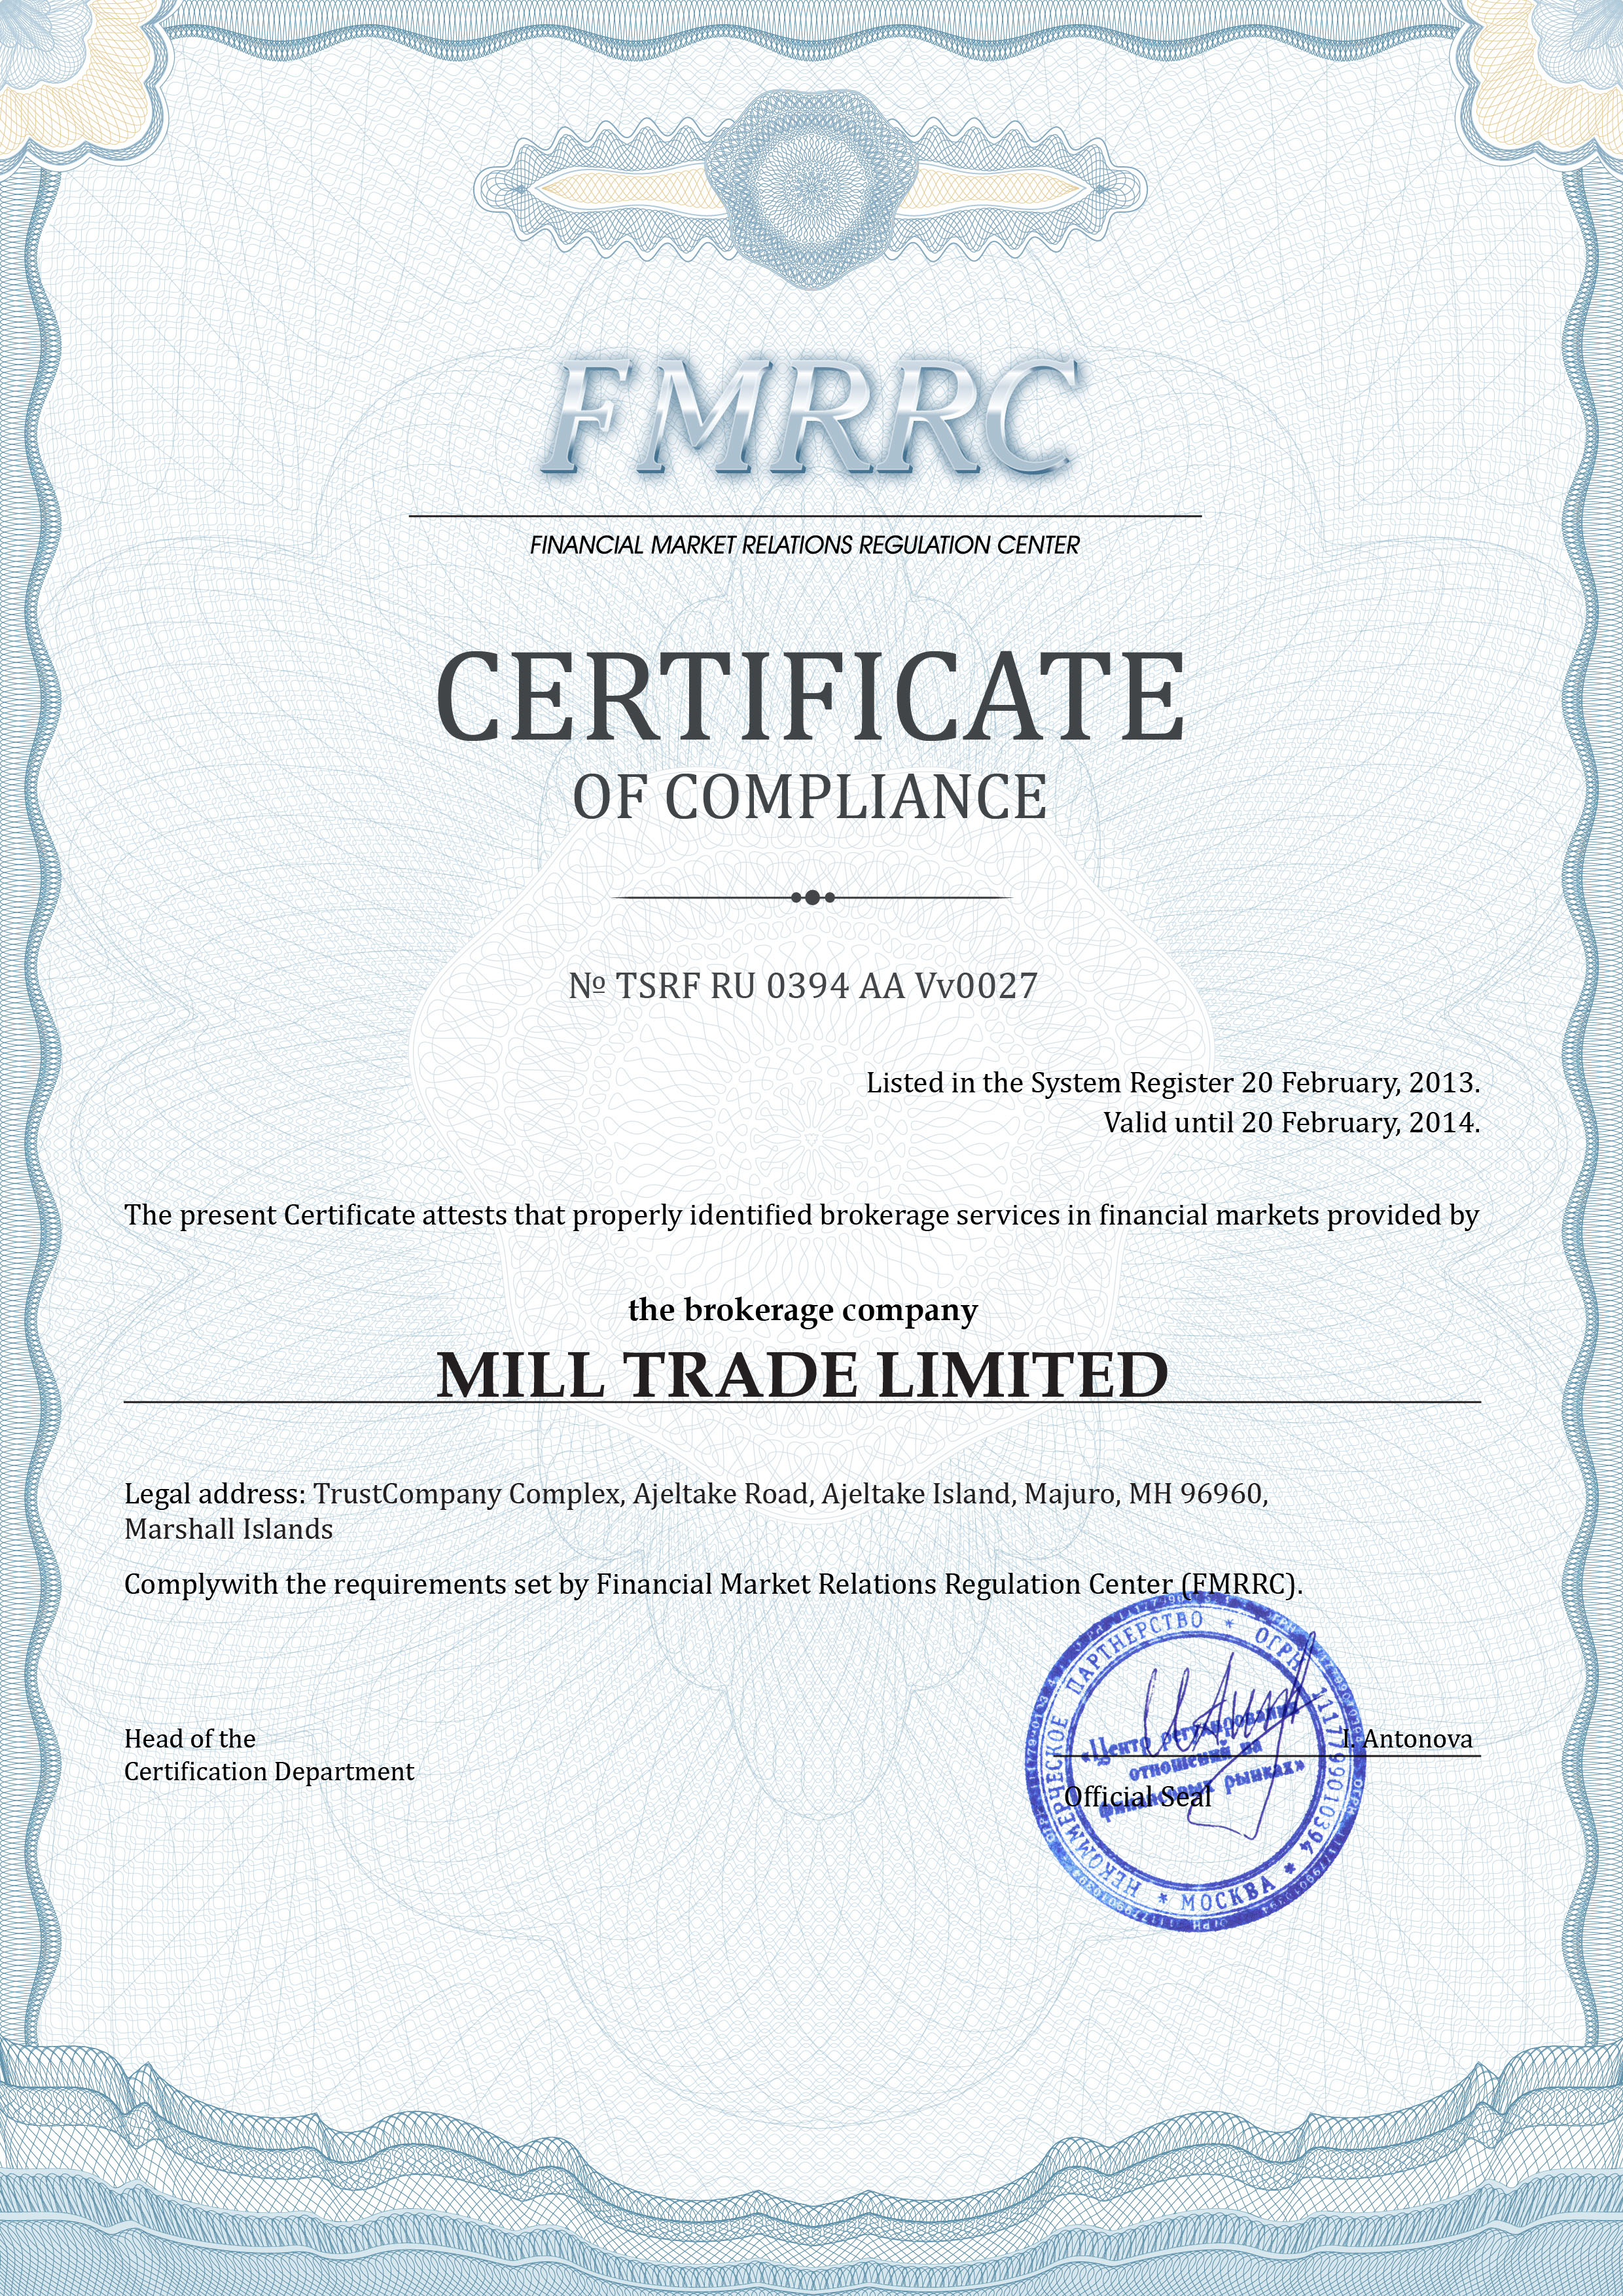 Mill Trade Limited Company Certificate Of Compliance